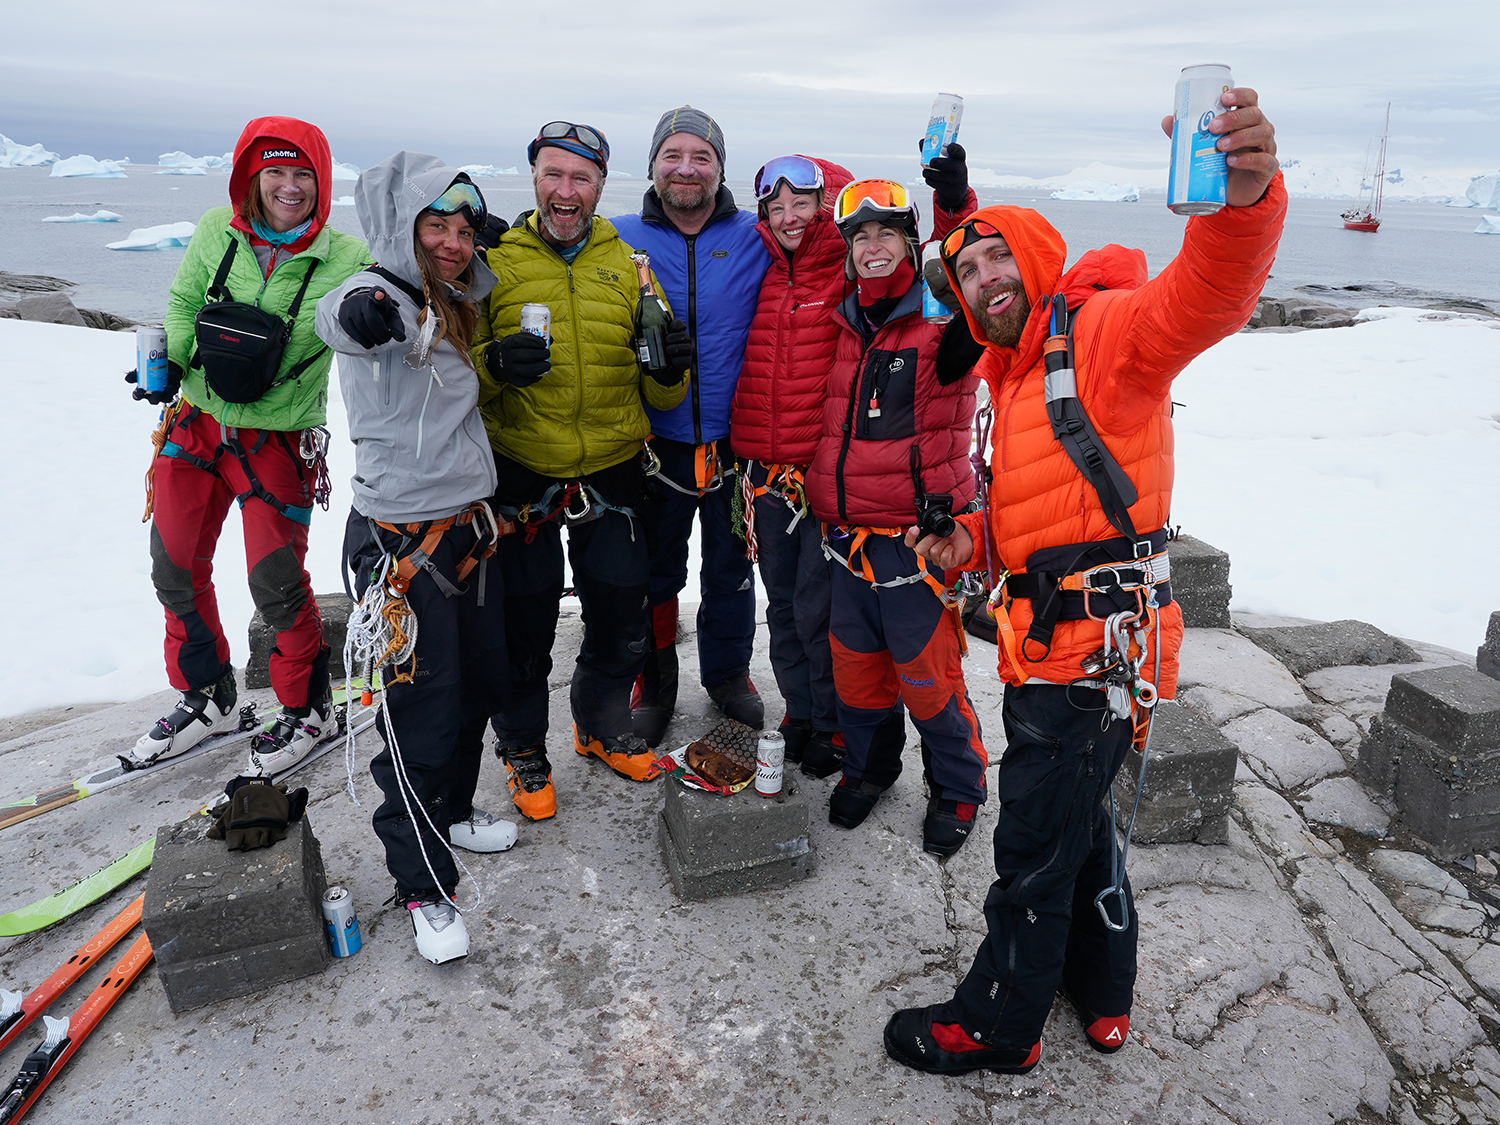 The psyched traverse group. Photo by Ralf Dujmovits.